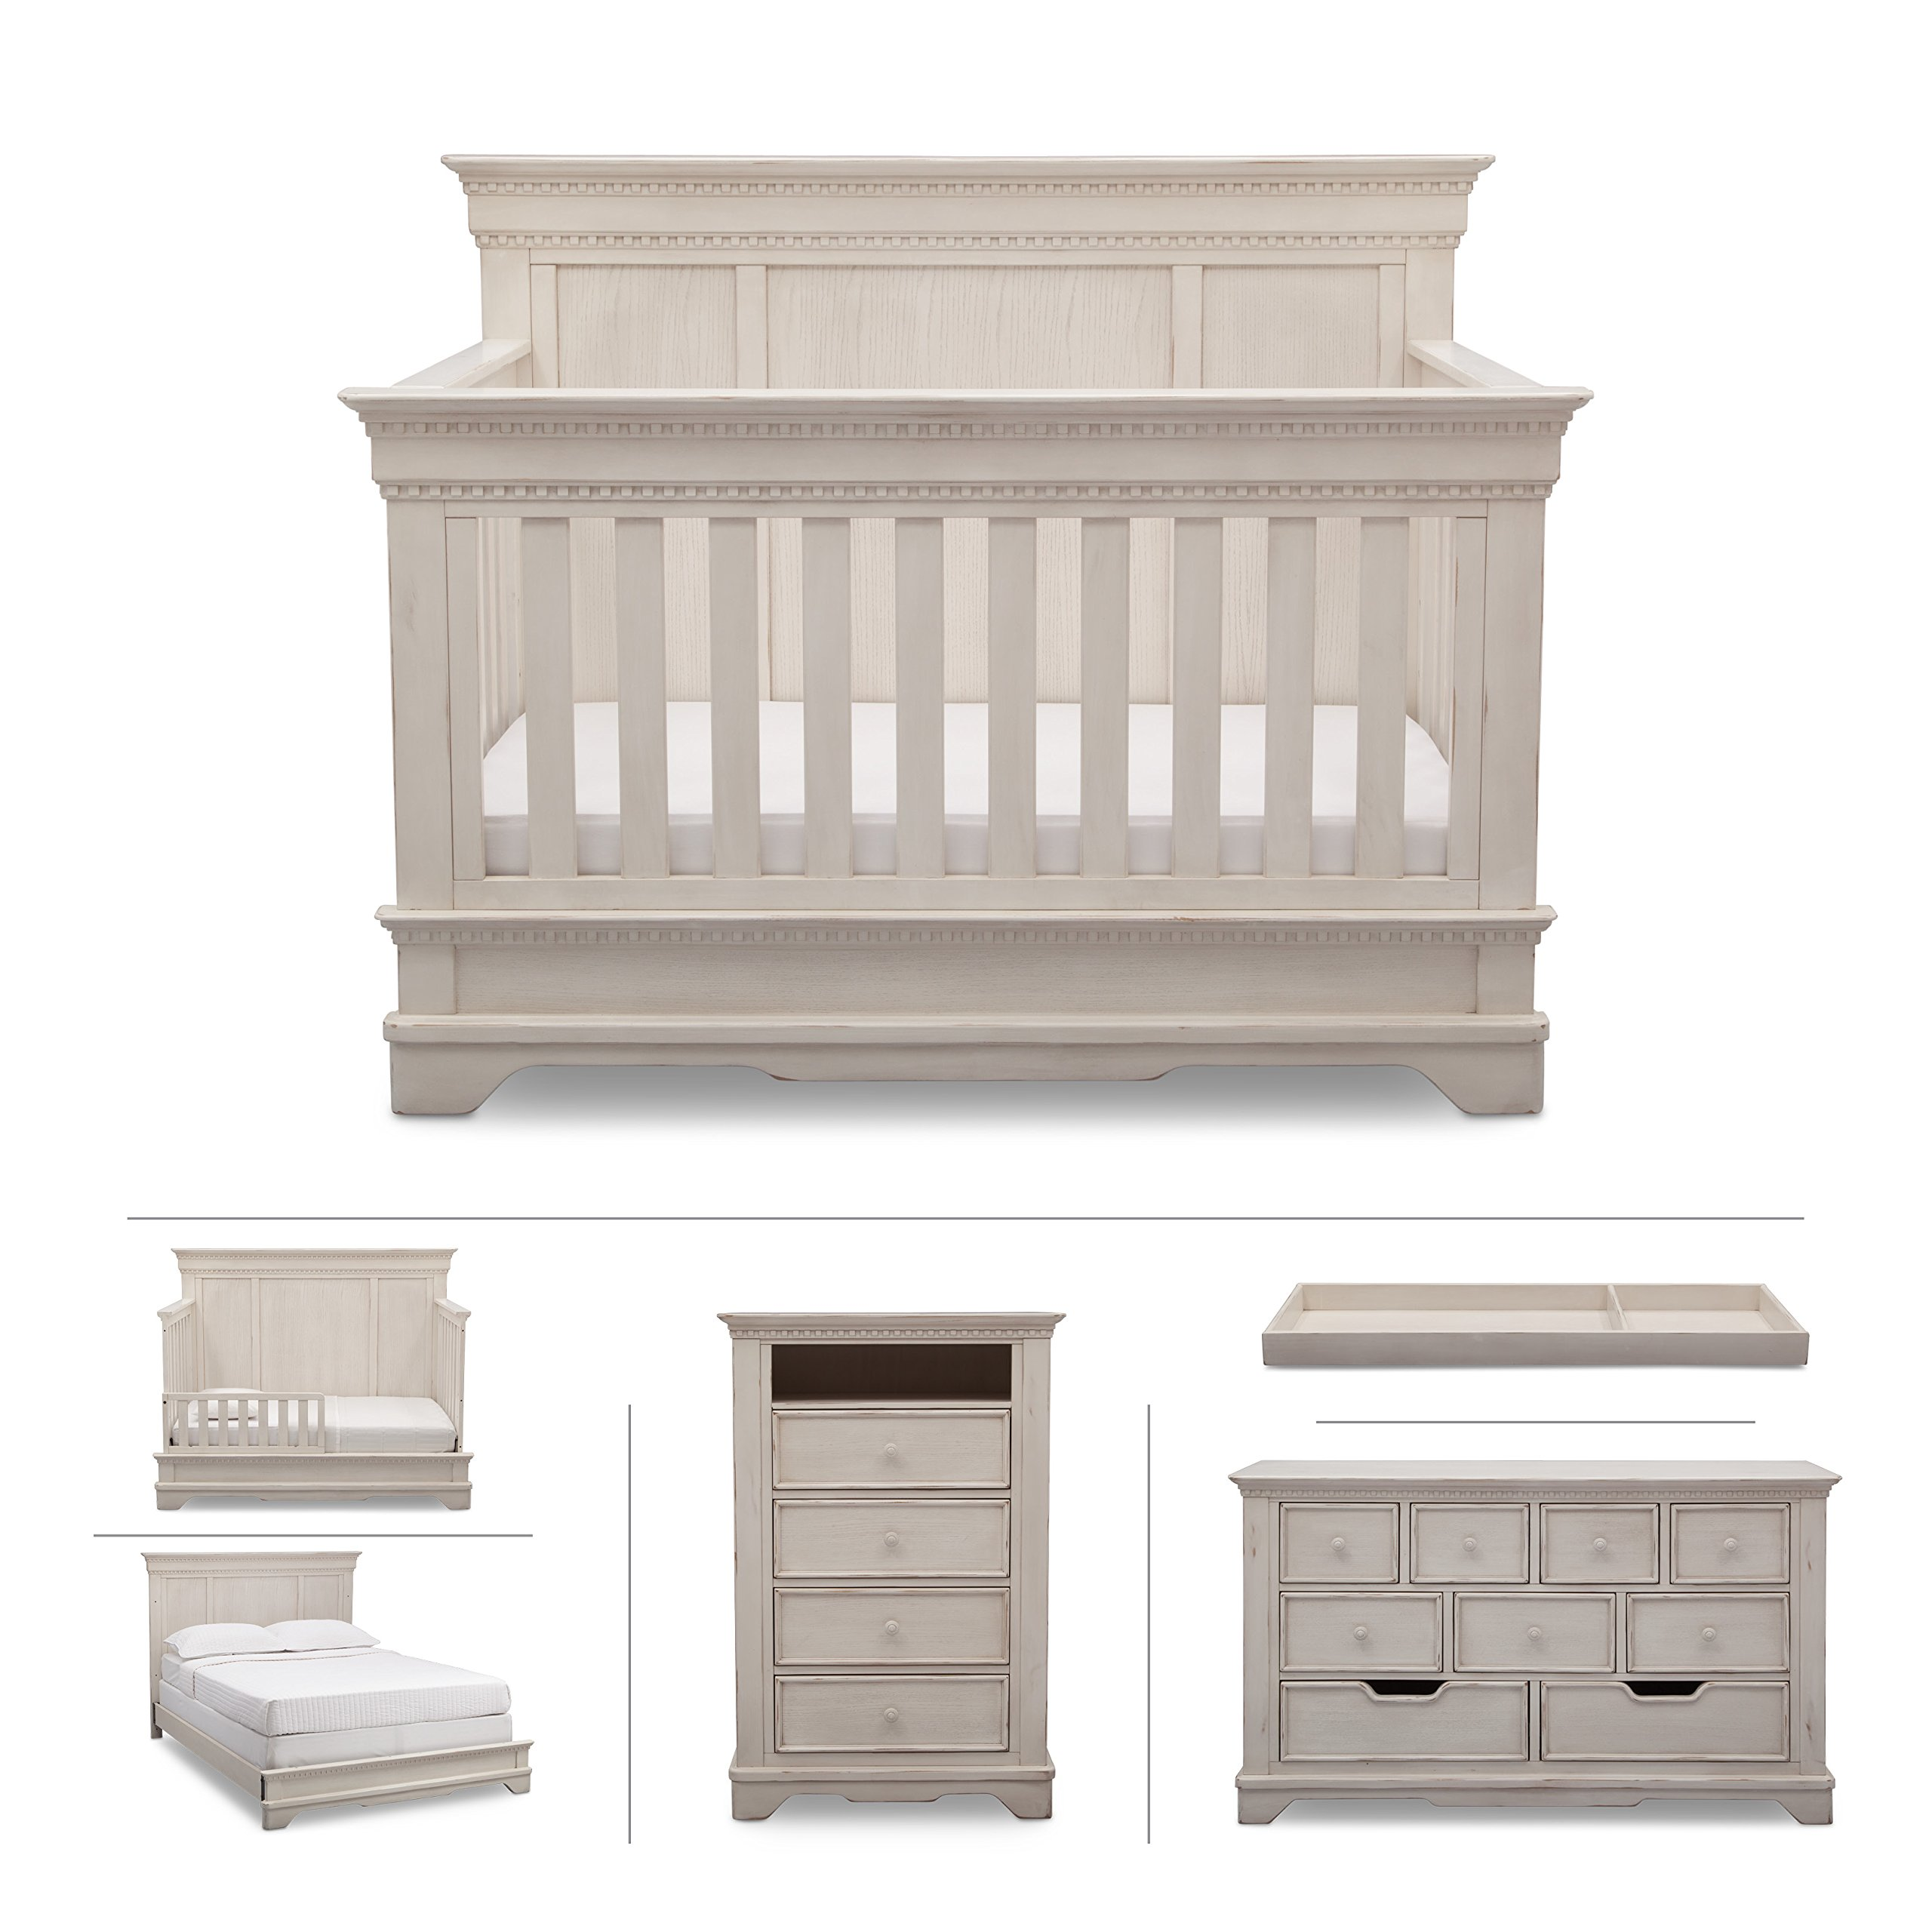 Baby Nursery Furniture Set in White Antique - Convertible Crib, Dresser, Chest, Changing Top, Toddler and Full Size Conversions - 6 Piece Simmons Tivoli Collection by Delta Children